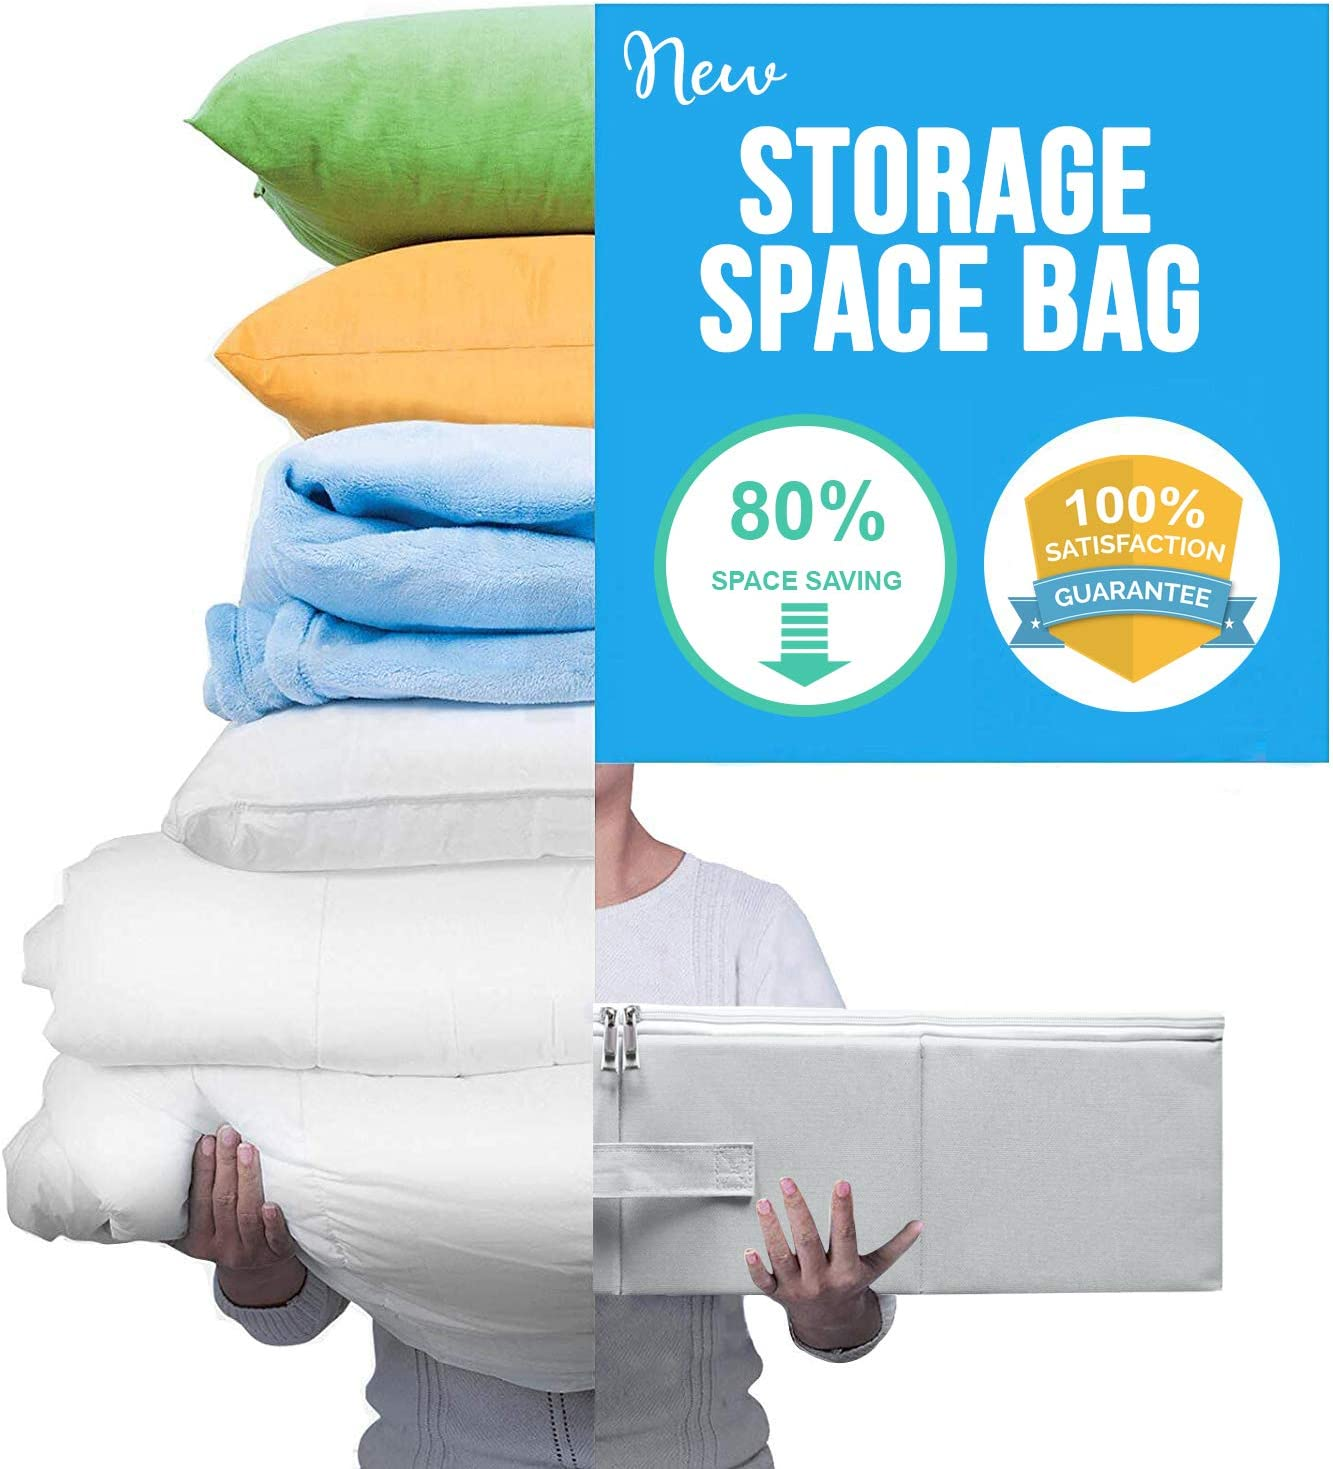 New Storage Space Bag / Luxurious Storage Box Tote with Reusable Vacuum Space Saver Bags. Organizing System that Protects Your Comforters, Clothing, Bedding, & More! (3Pcs Set) (Gray - Under the Bed)